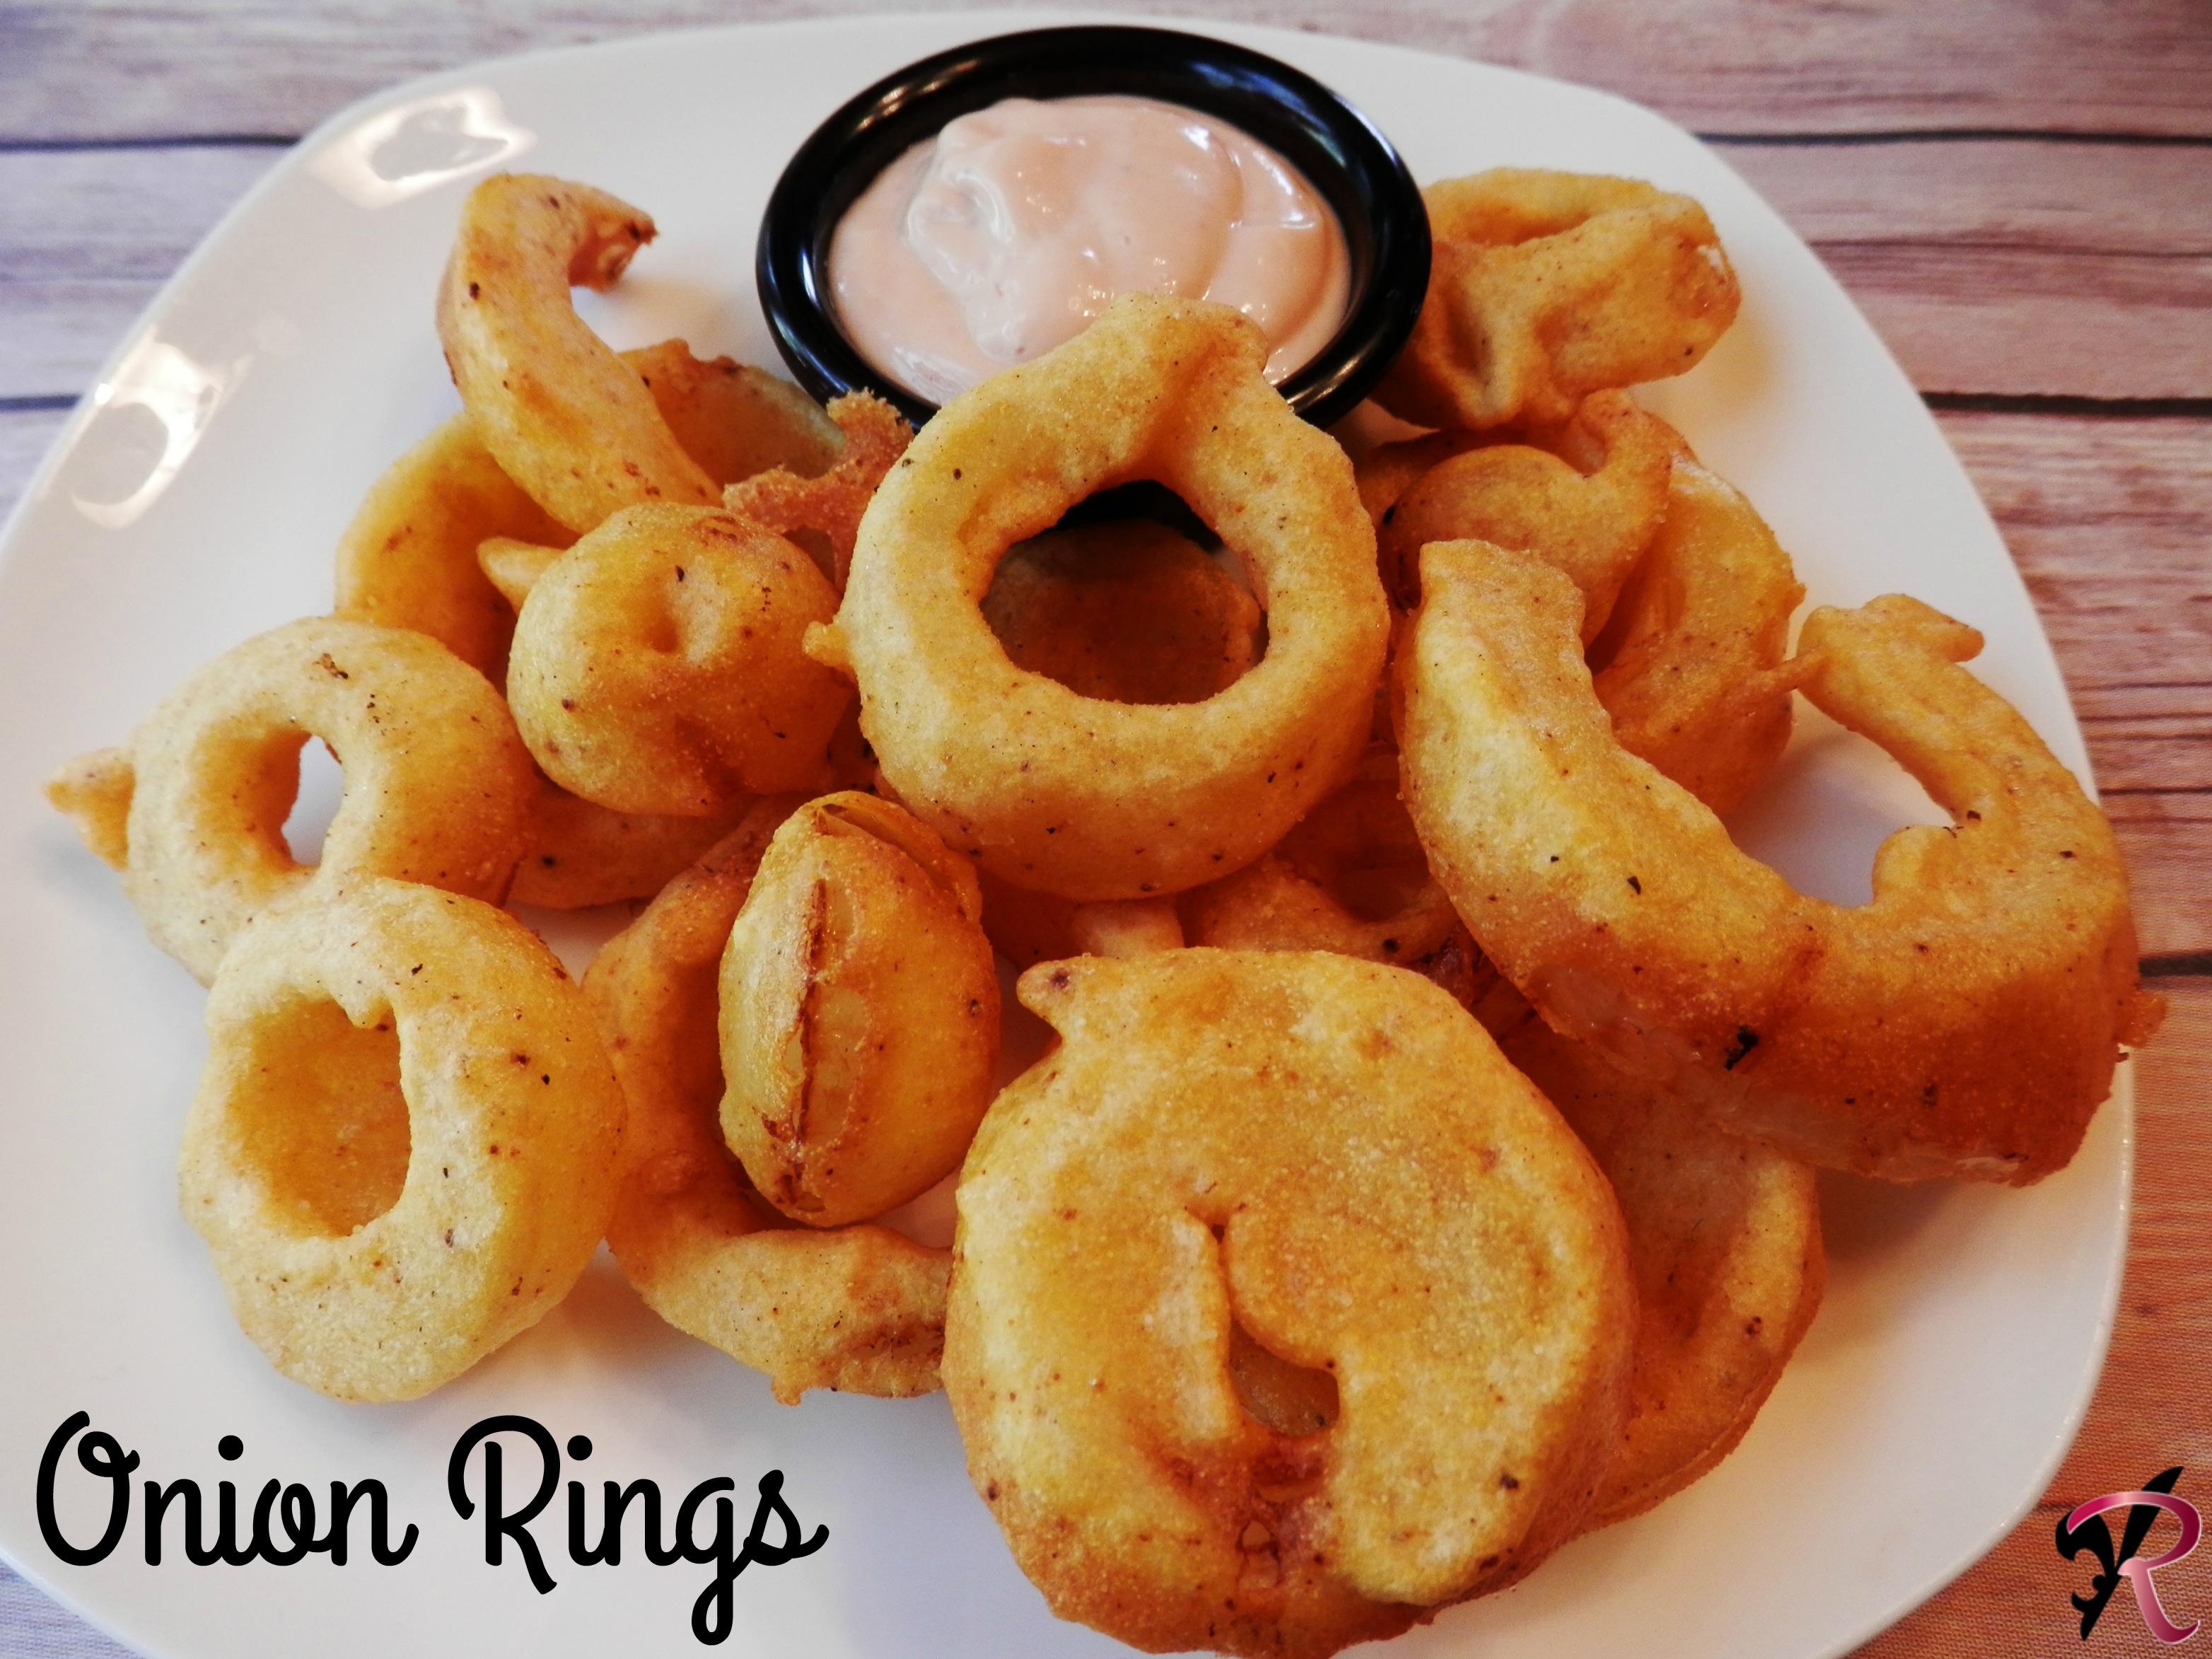 beer slo life a fresh rings battered img onion recipes